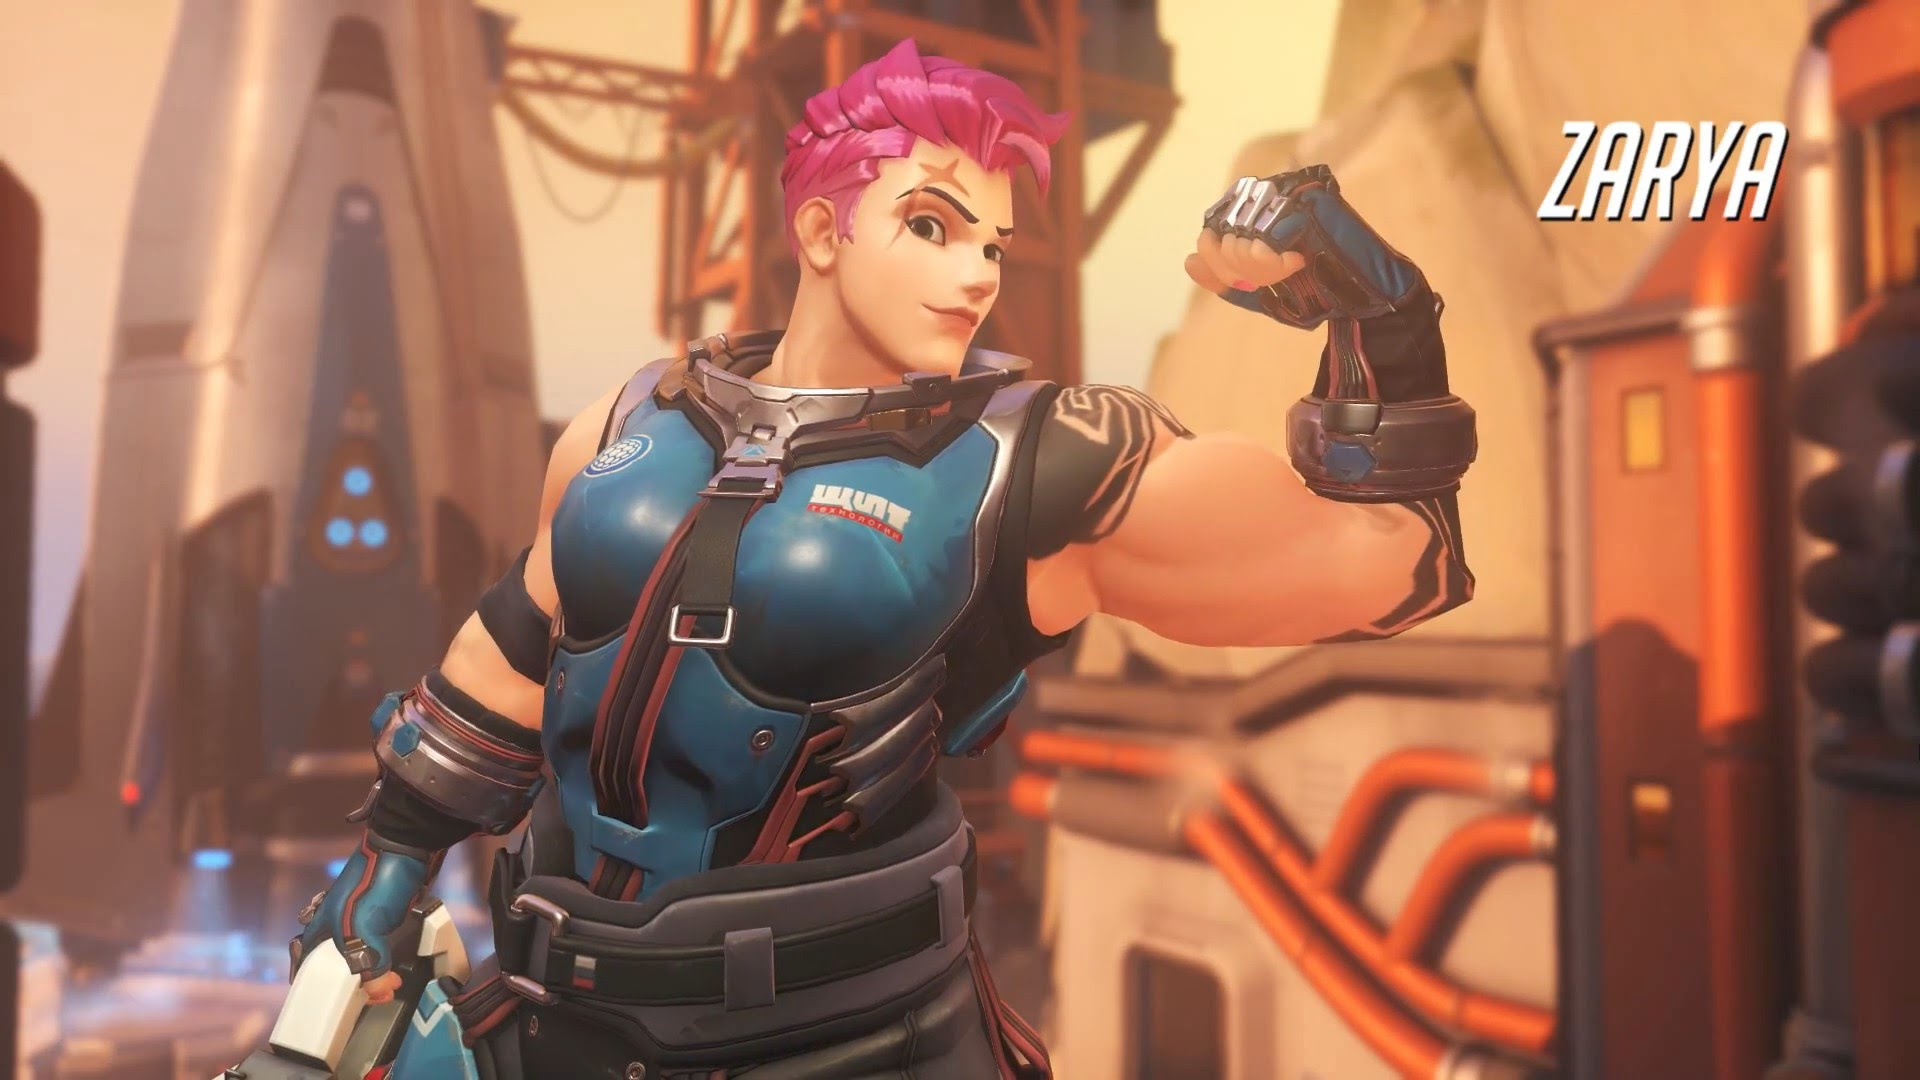 Overwatch : Zarya Wallpapers